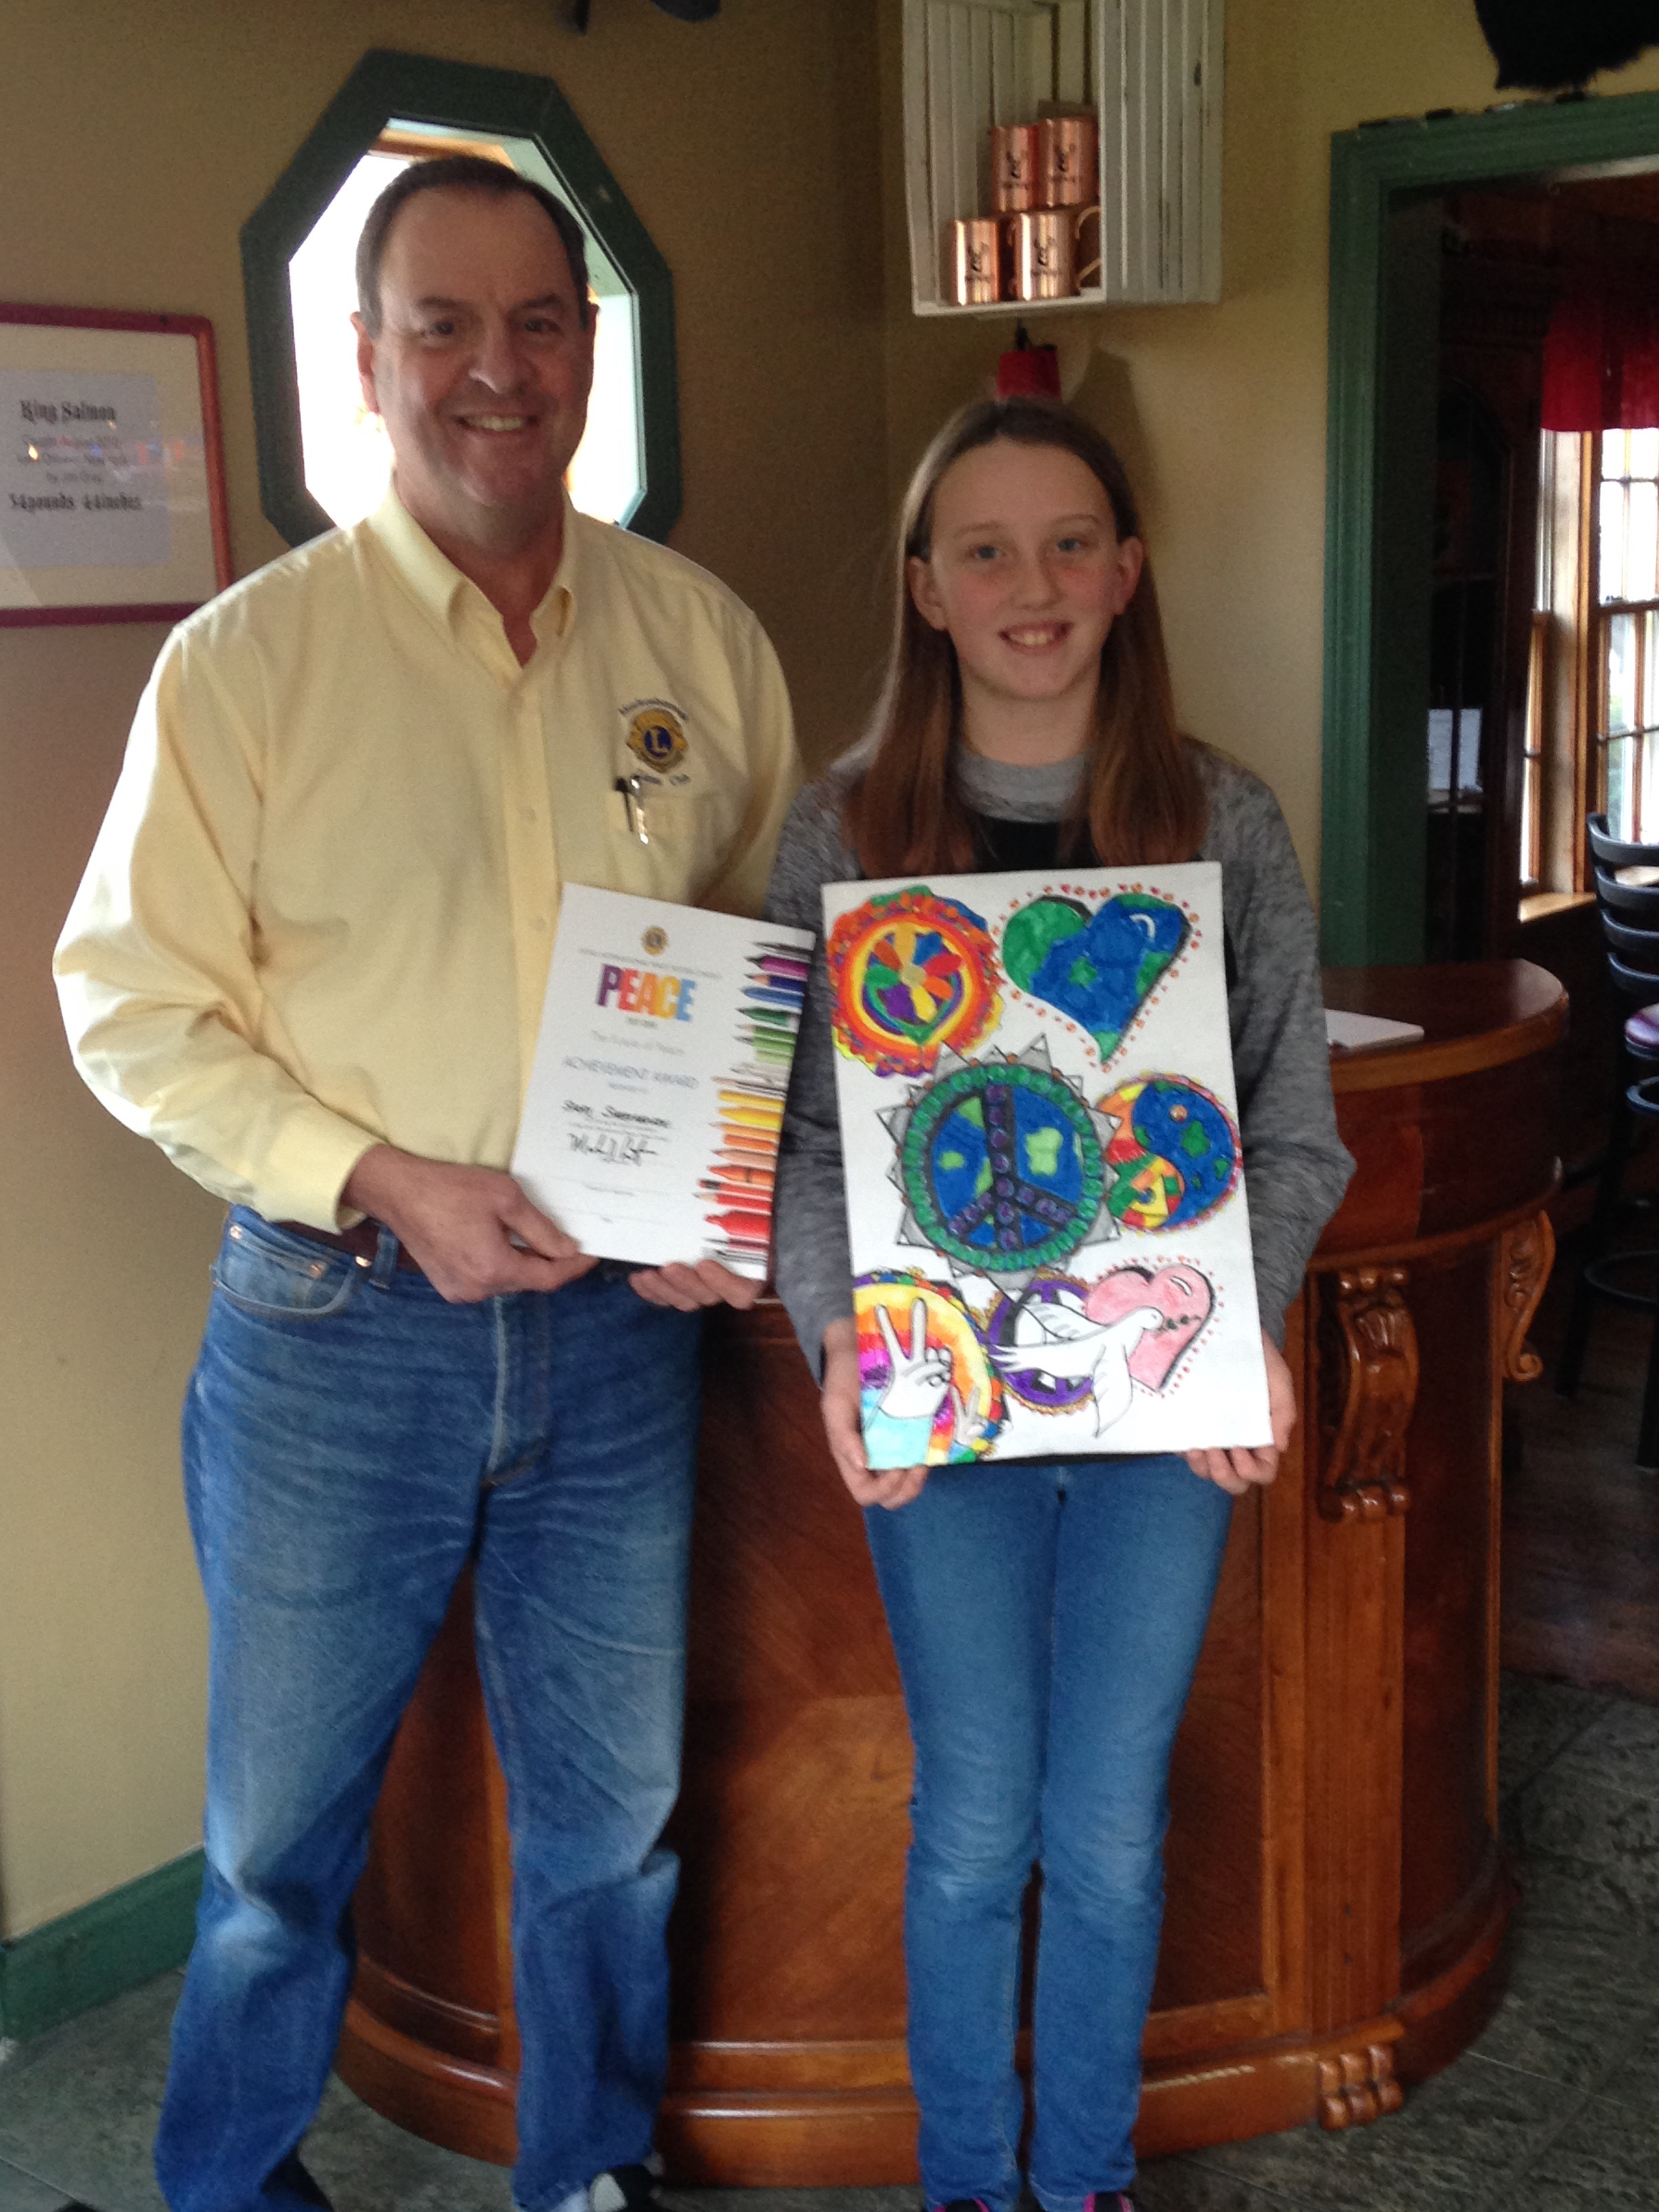 Lions Club President Mark Cotrupi Pictured With Sadey And Her Poster Said He Was Impressed By The Colorfulness Creativity Of